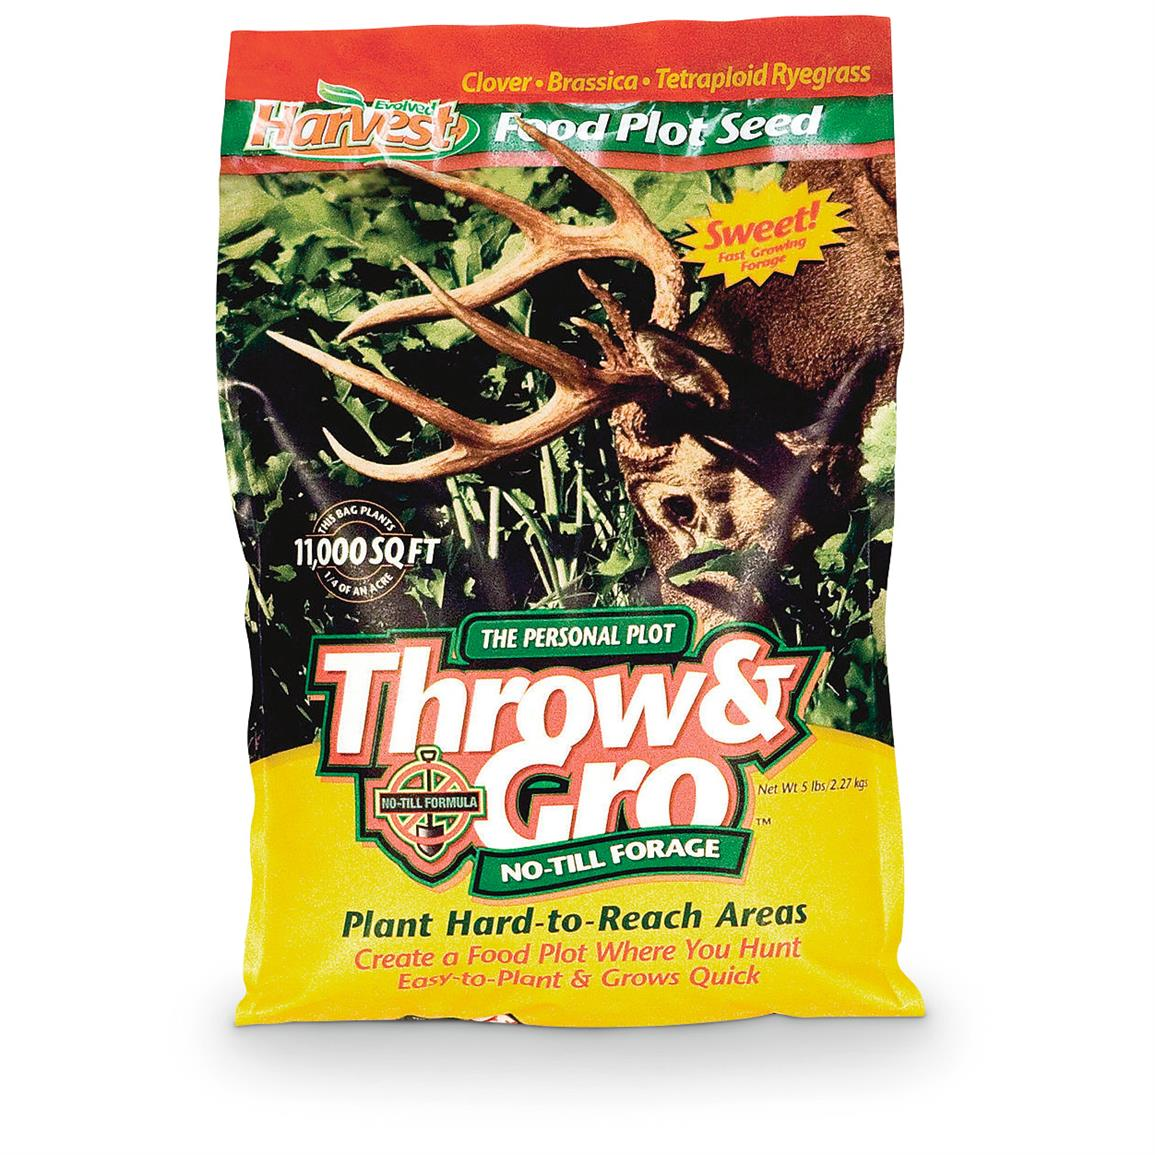 Evolved Harvest Throw & Gro No-Till Forage